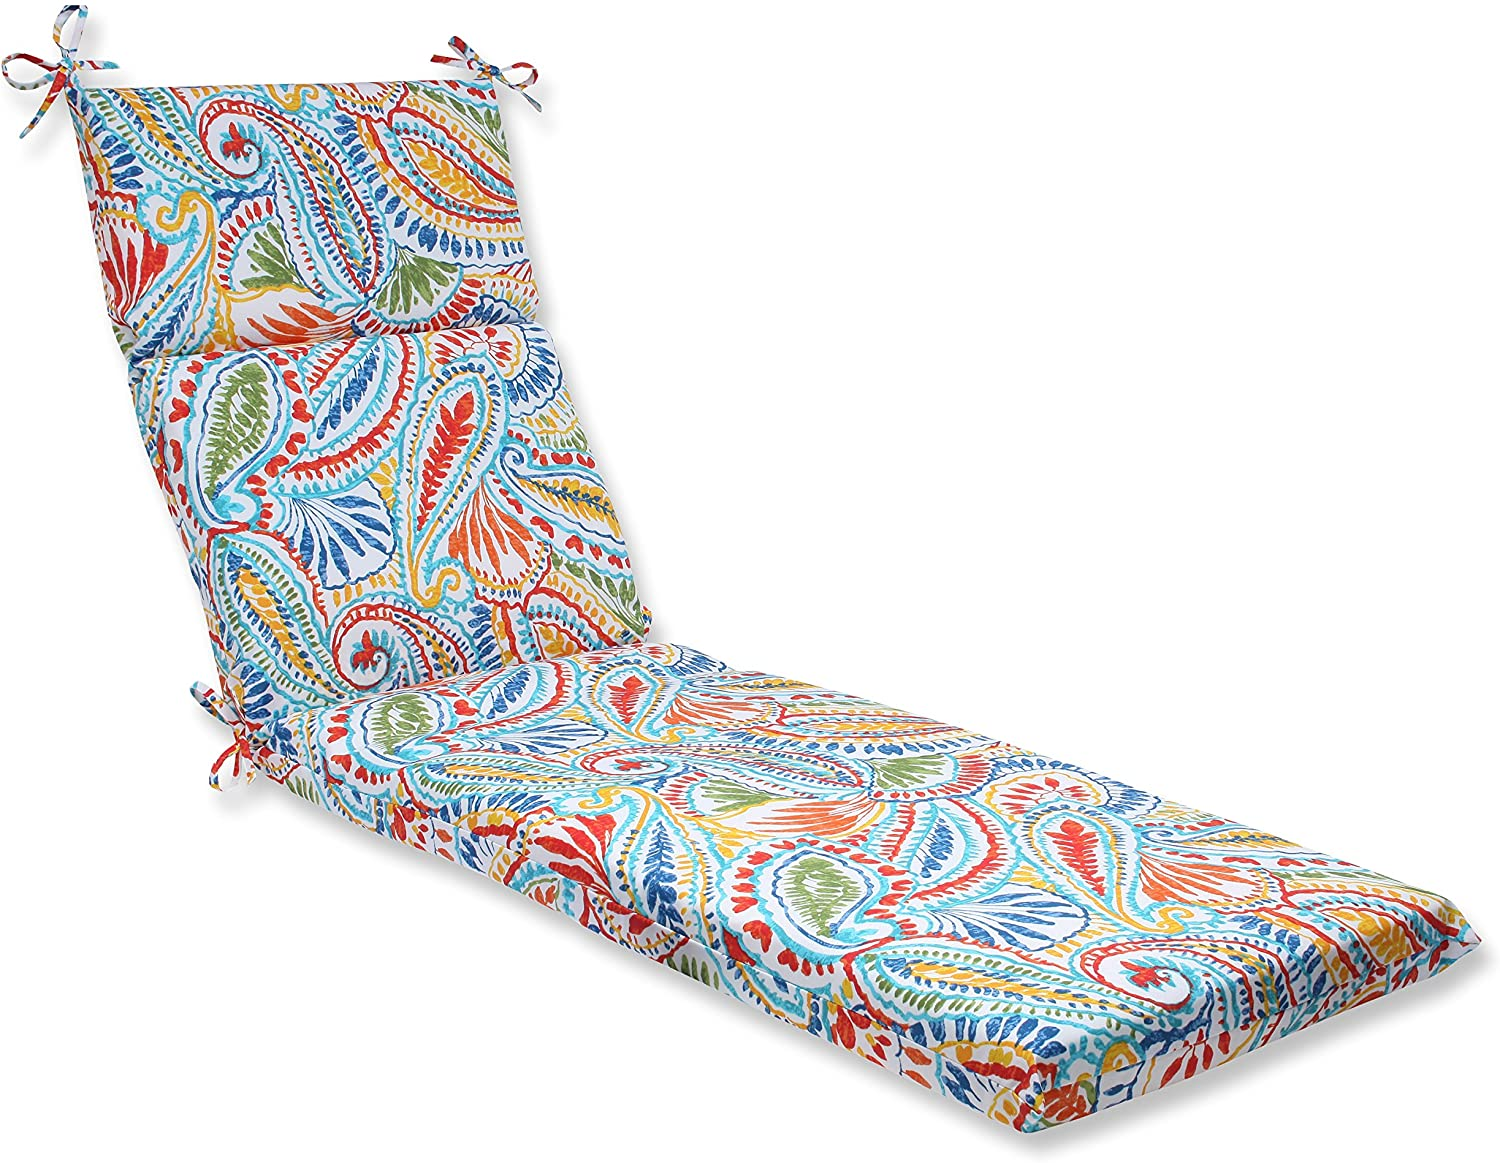 Pillow Perfect 572673 Outdoor/Indoor Ummi Chaise Lounge Cushion, 72.5 in. L X 21 in. W X 3 in. D, Multicolored